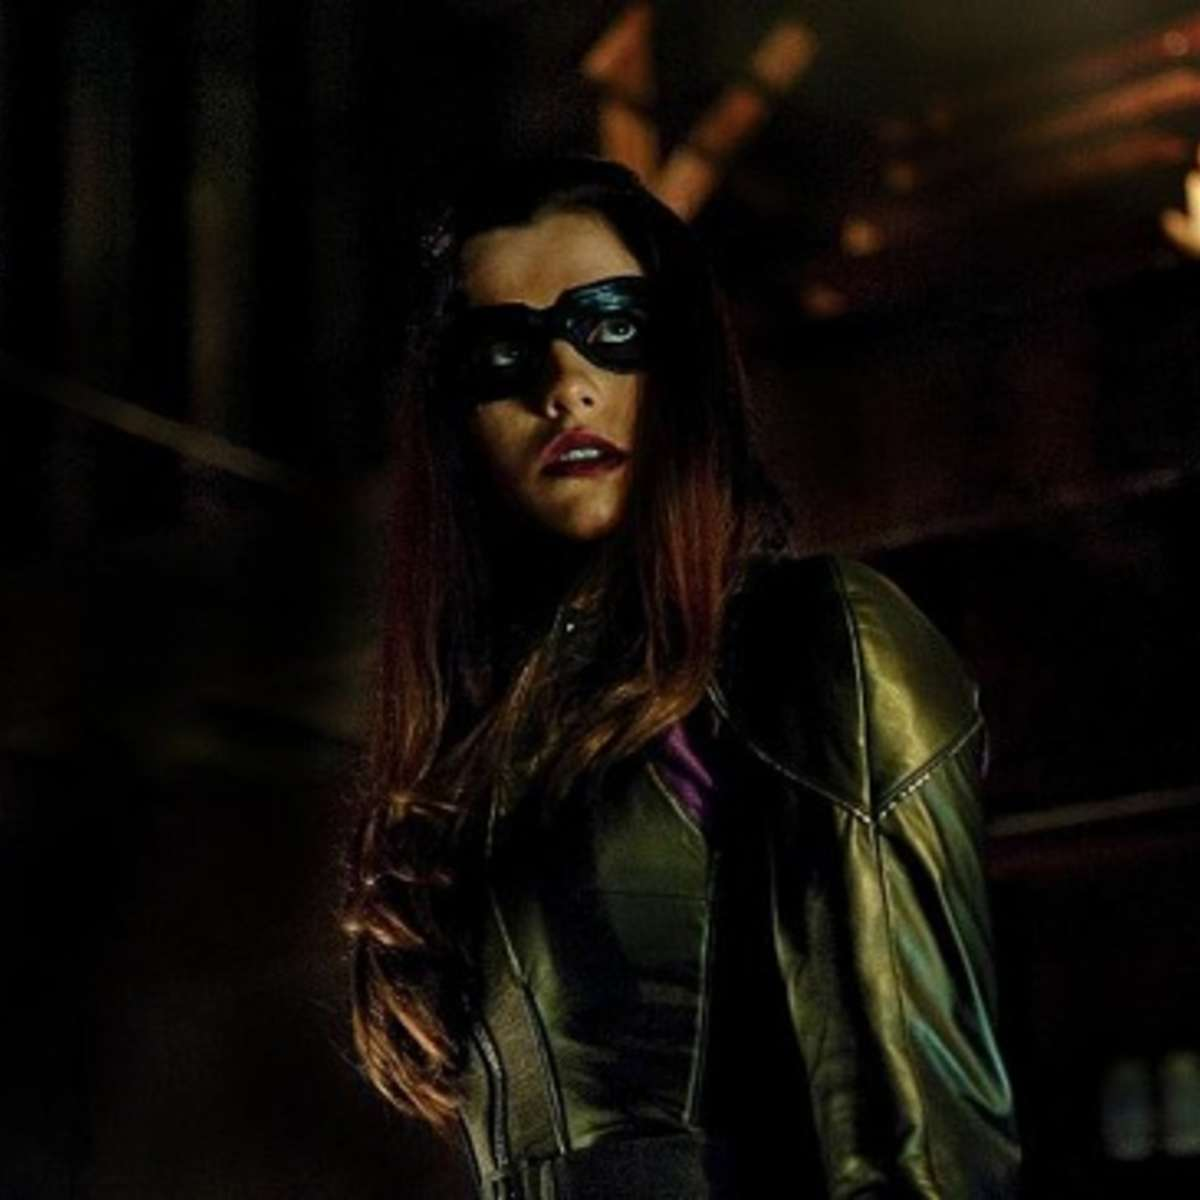 m_arrow_huntress_return.jpg